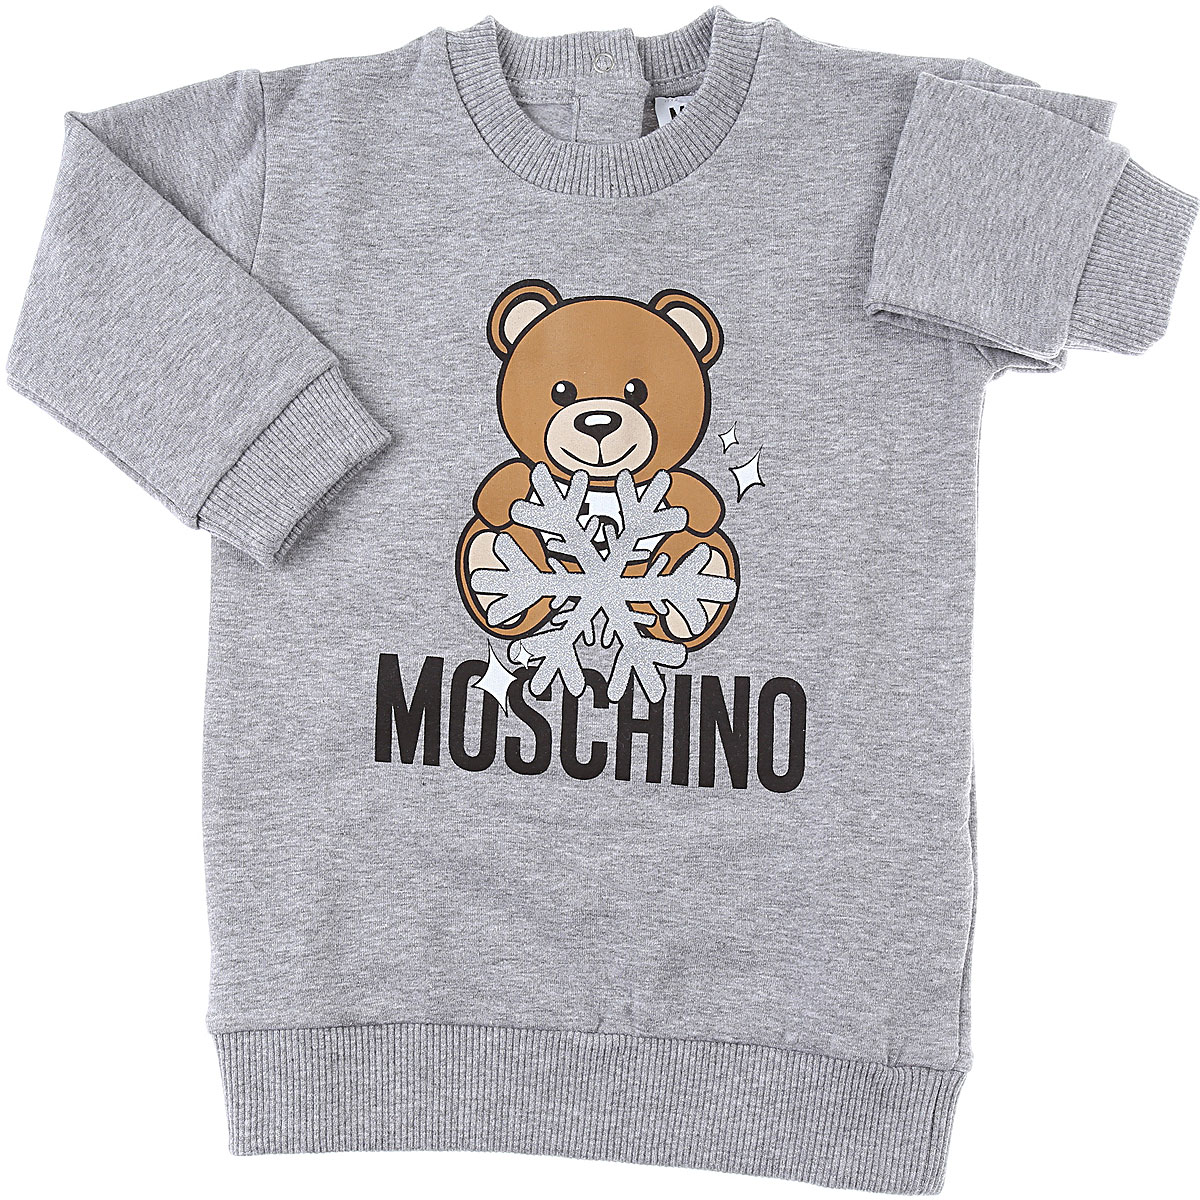 Moschino Baby Dress for Girls On Sale, Grey, Cotton, 2019, 12M 18M 18M 24M 3Y 9M